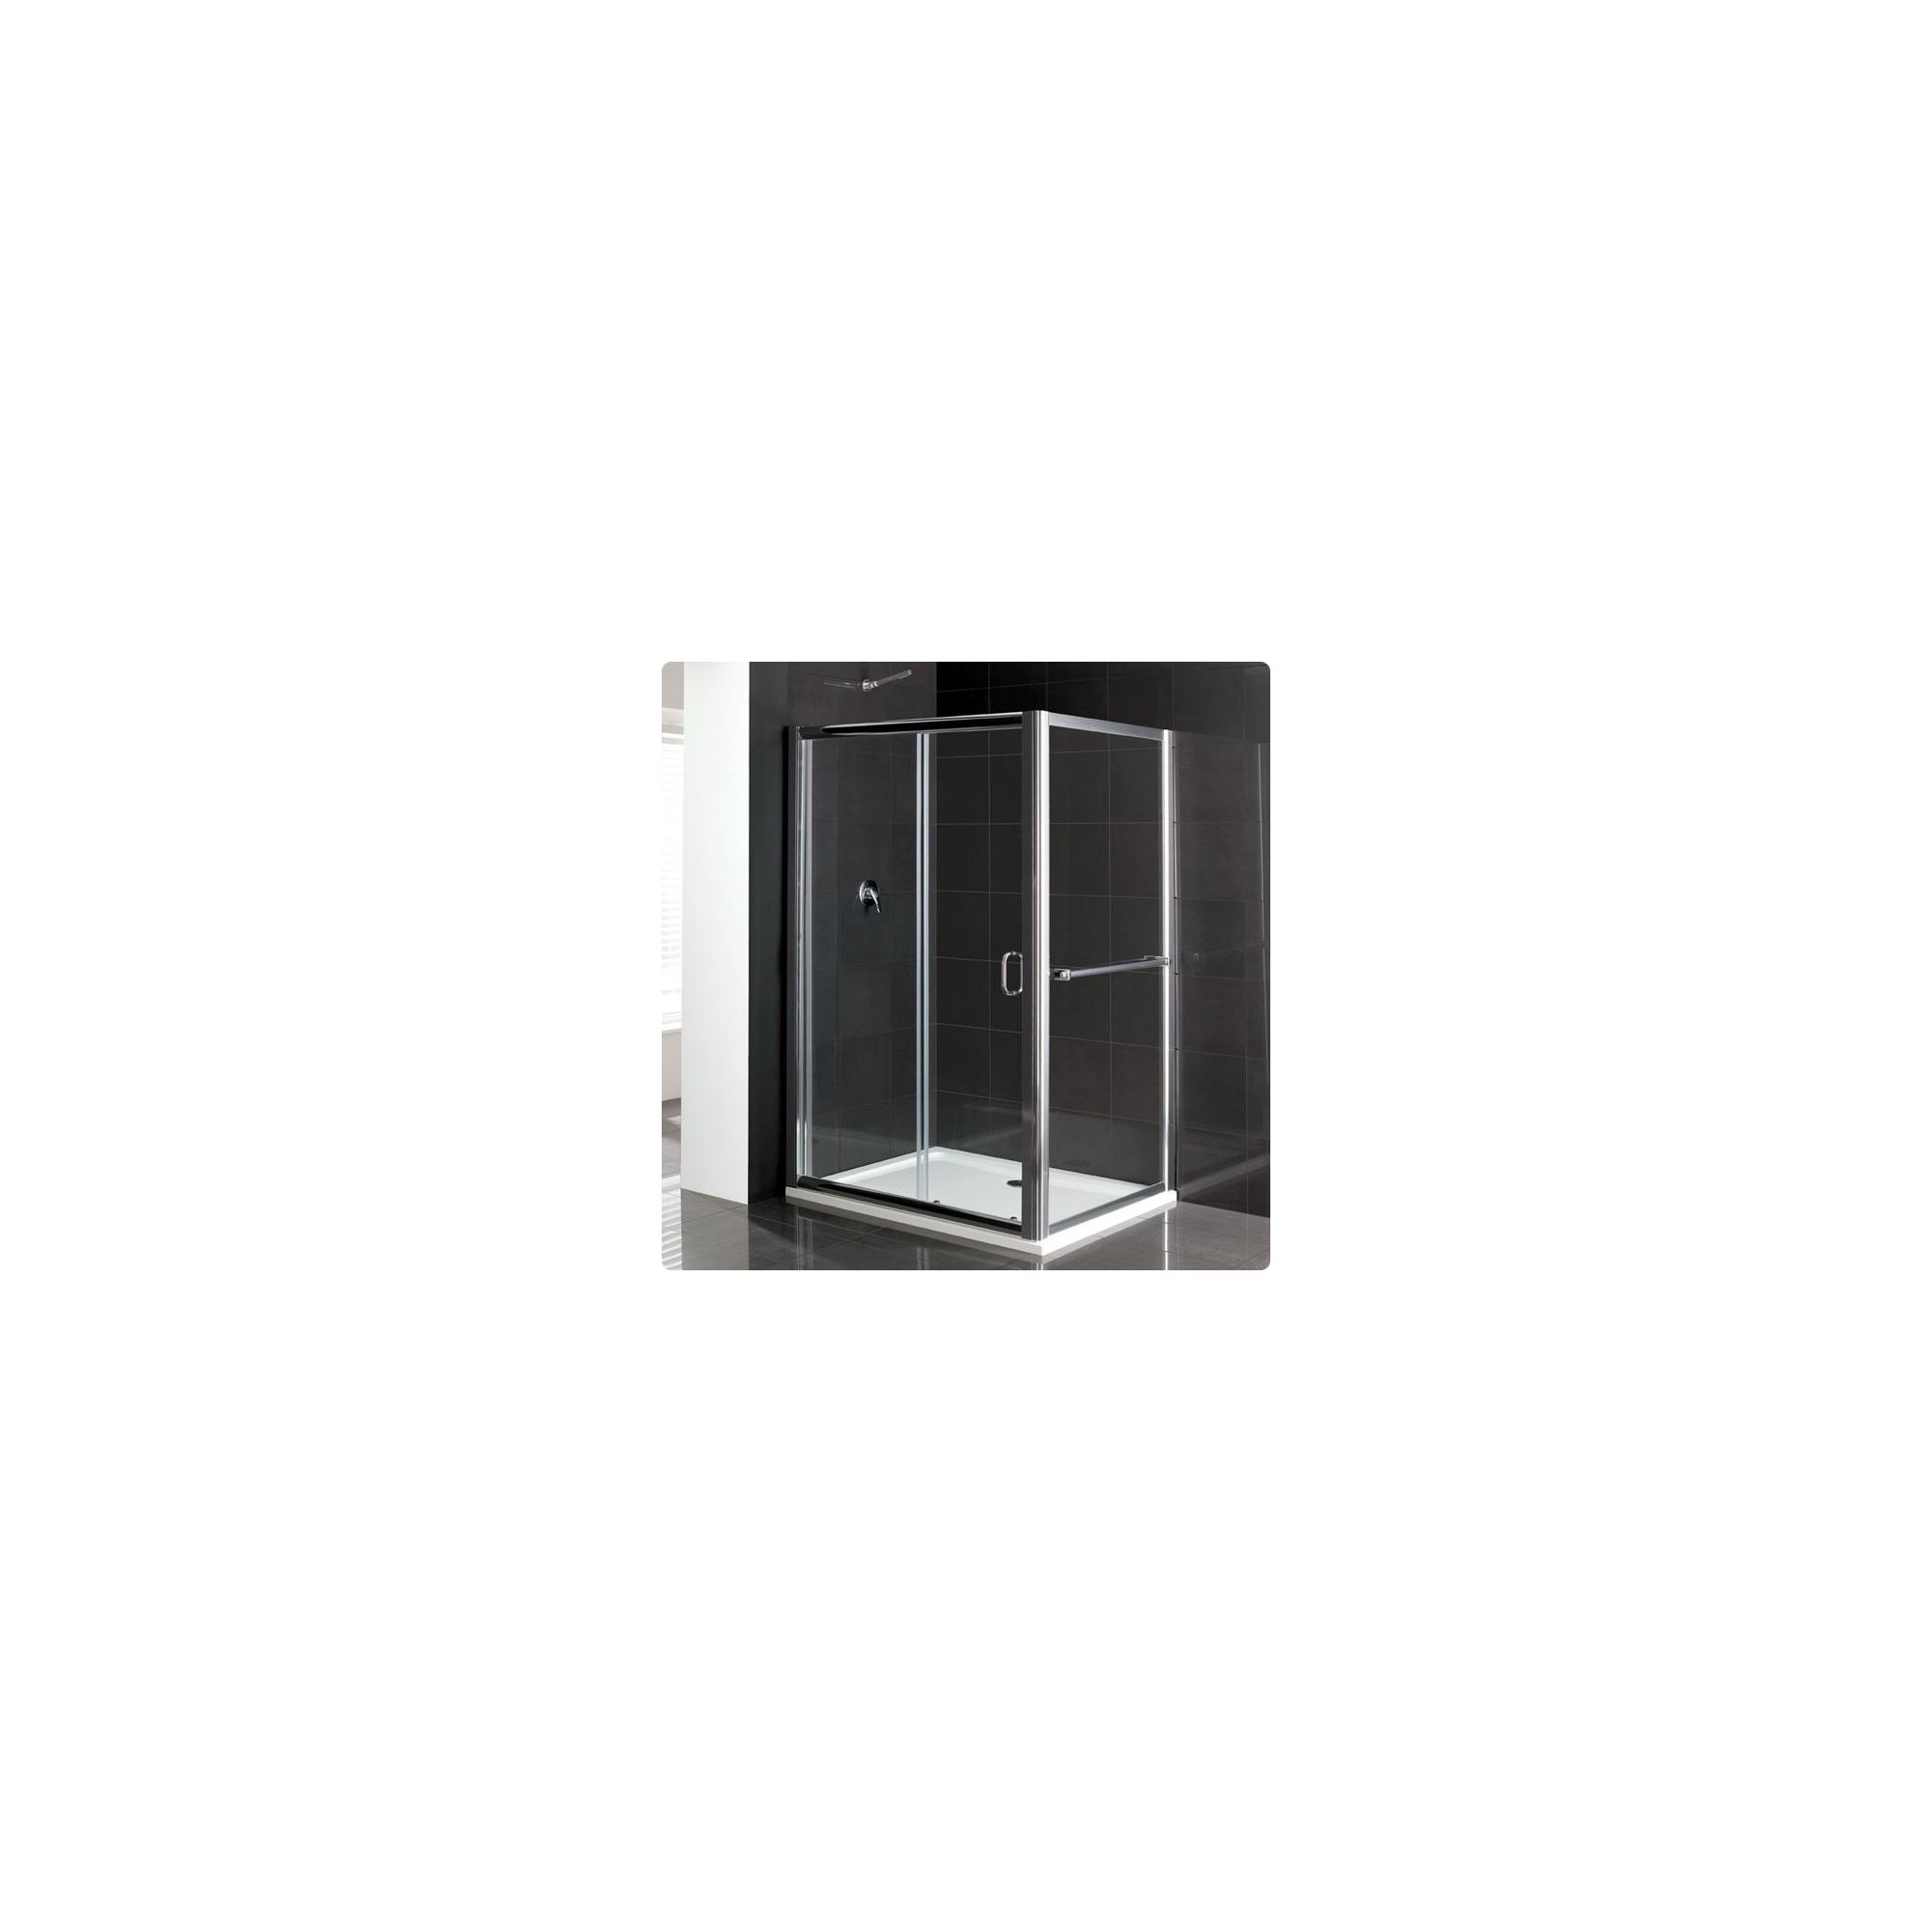 Duchy Elite Silver Sliding Door Shower Enclosure, 1600mm x 900mm, Standard Tray, 6mm Glass at Tesco Direct